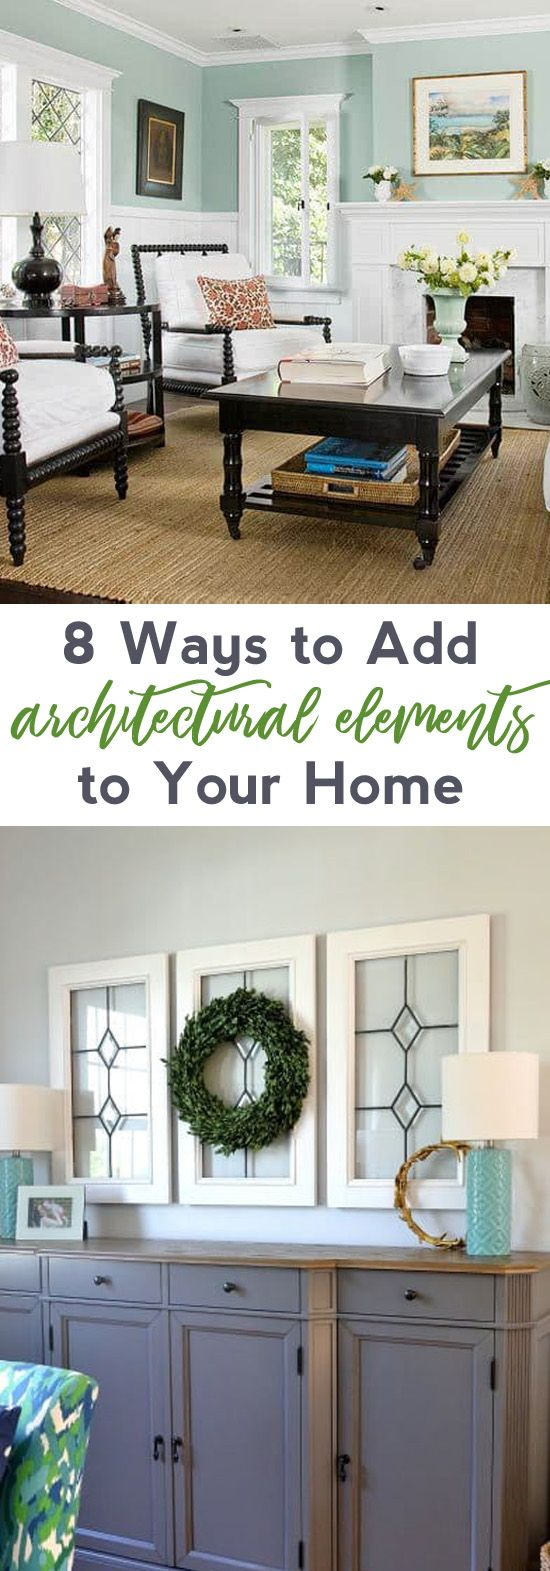 farmhouse decor | ways to add architectural elements | fixer upper | farmhouse style | vintage | molding | window panes | fixer upper rooms